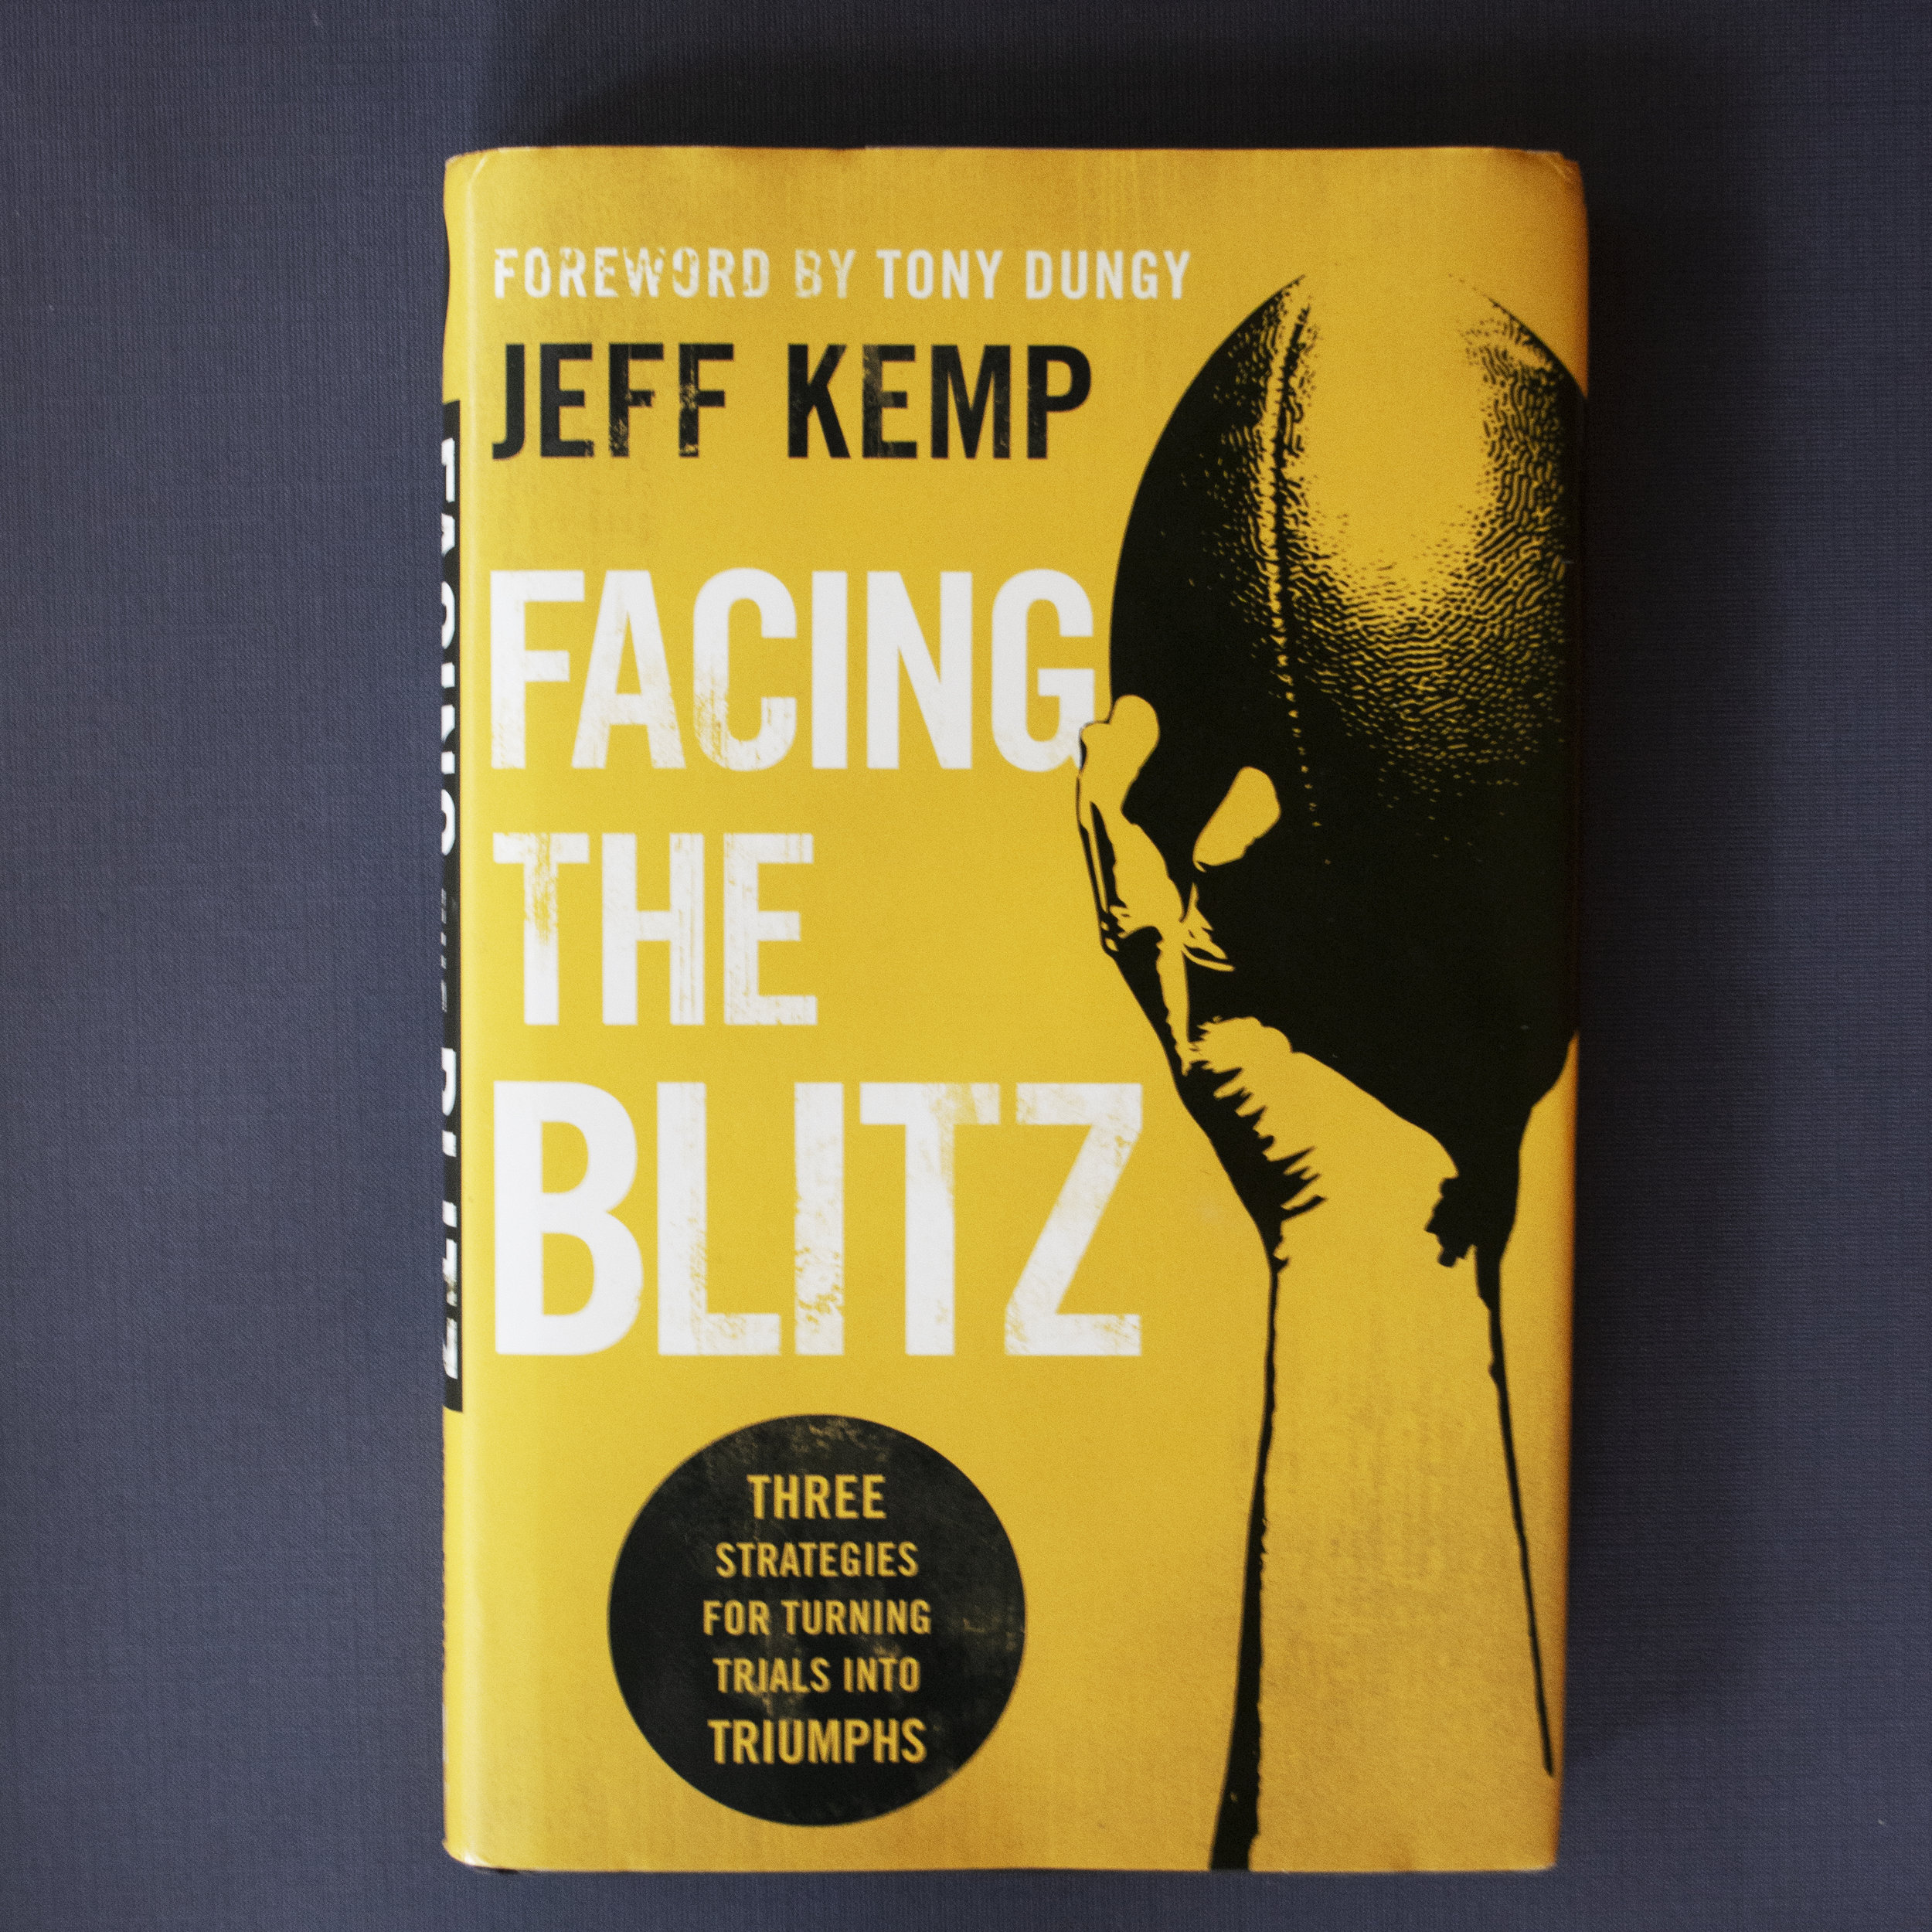 "Facing the Blitz - Jeff Kemp - In football, a ""blitz"" is an all-out attack. Defenses use them to force the quarterback into a mistake and create mayhem and destruction. But by its nature the blitz also creates an opportunity for the quarterback and his team. What looks like the worst play can become the best.During a life ""blitz,"" when everything seems like it's collapsing–financially, relationally, spiritually, or physically–if you take initiative you can do more than just survive. You can grow, succeed, and advance. In Facing the Blitz, Jeff Kemp shares lessons he's learned through all kinds of life blitzes, both personal and professional. Readers will discover how triumph is about transformation and being others-oriented; having the right mind-set can turn unnecessary fear and misery into courage and joy.Learn more on Jeff's website: www.facingtheblitz.com"